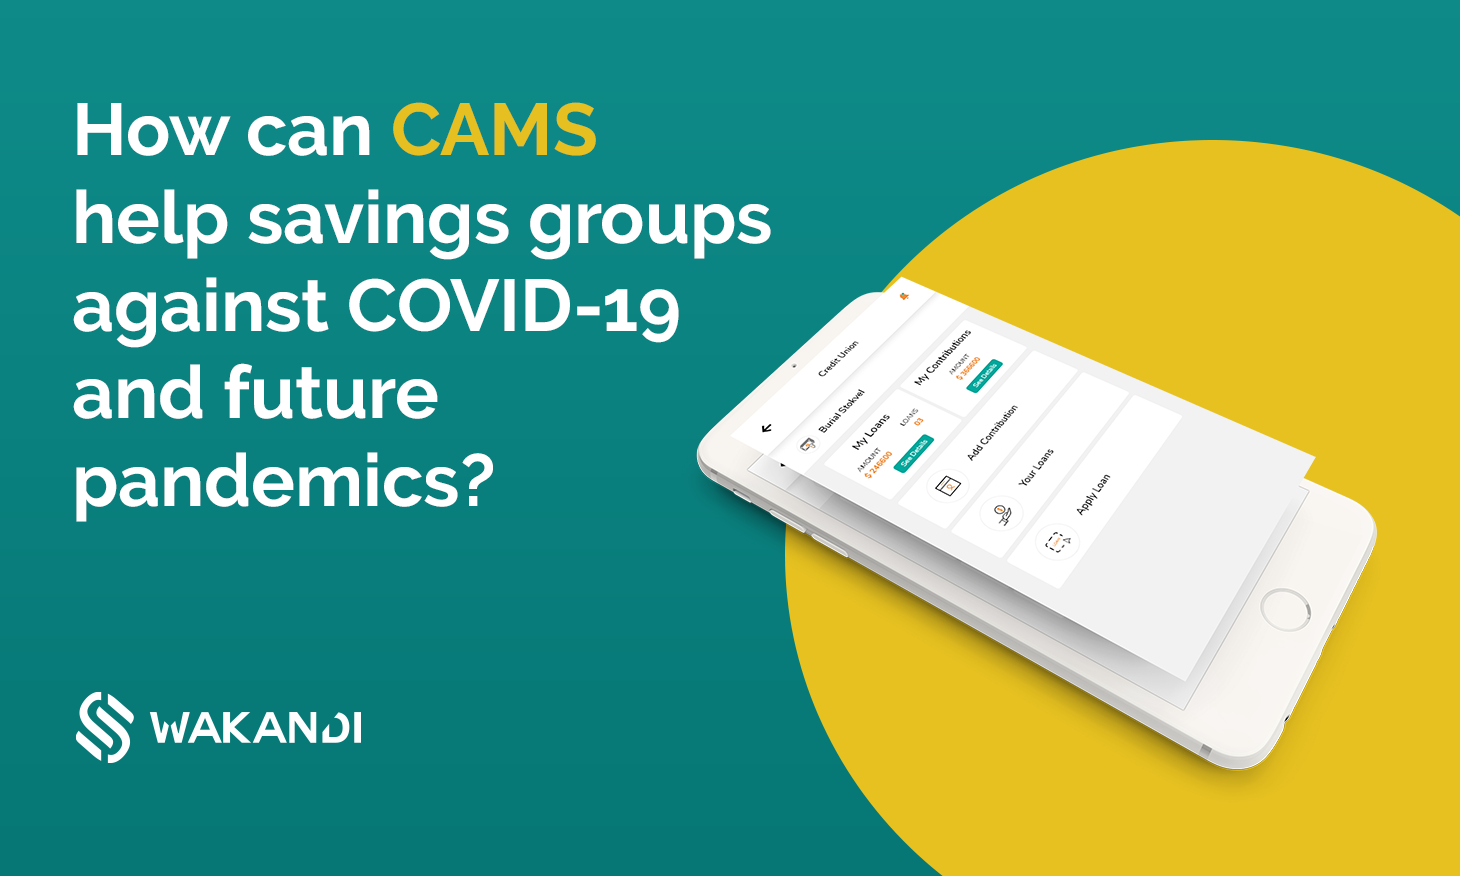 Wakandi CAMS help savings groups in Africa fight COVID 19